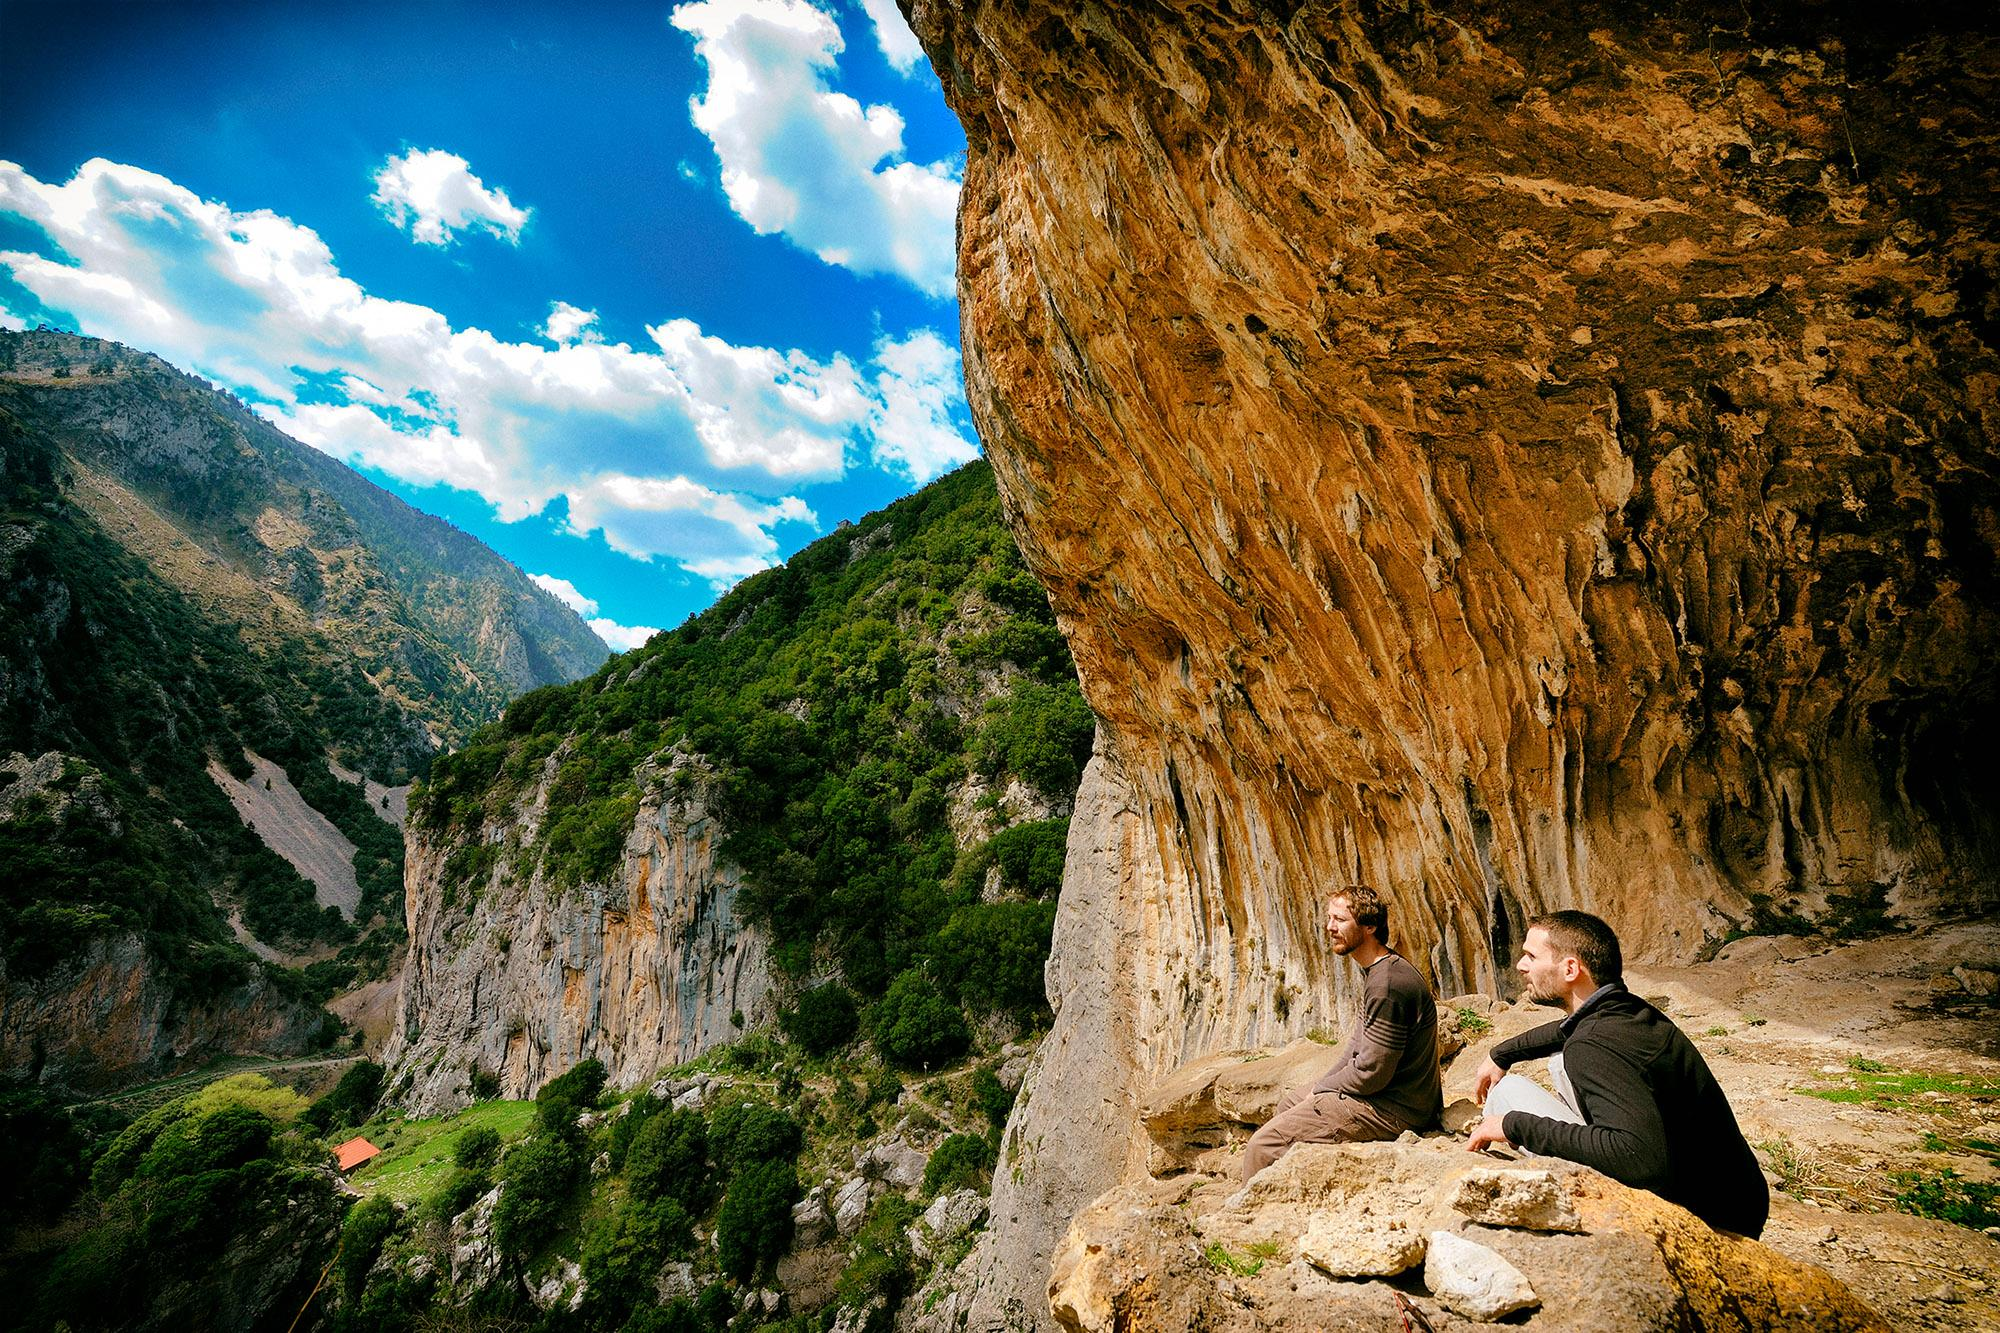 Lagada is an amazing climbing area 14 km away from the bustling city of Sparta. - © X. Tsipokas